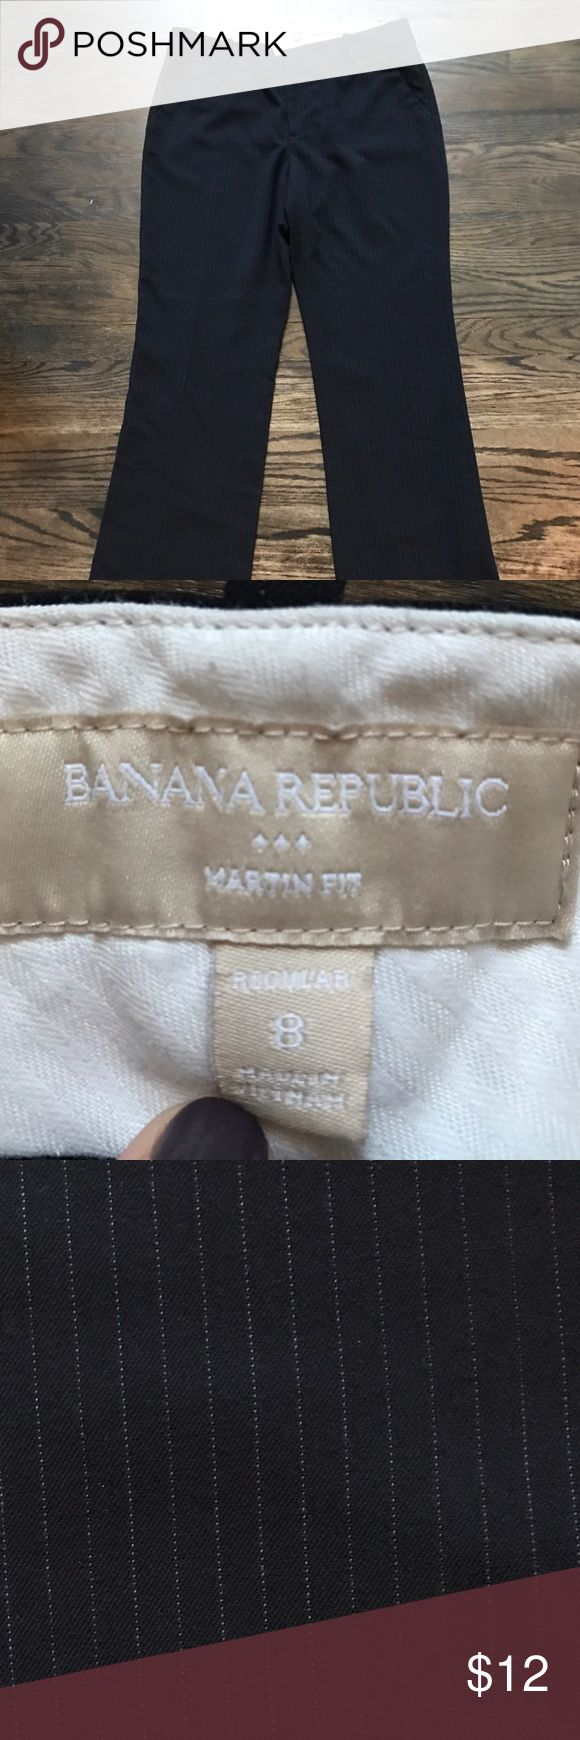 """Banana Republic Martin Fit pants in navy pinstripe Classic navy pinstripe trouser pants from Banana Republic - Martin fit. Size 8, 33"""" inseam. Banana Republic Pants Trousers"""